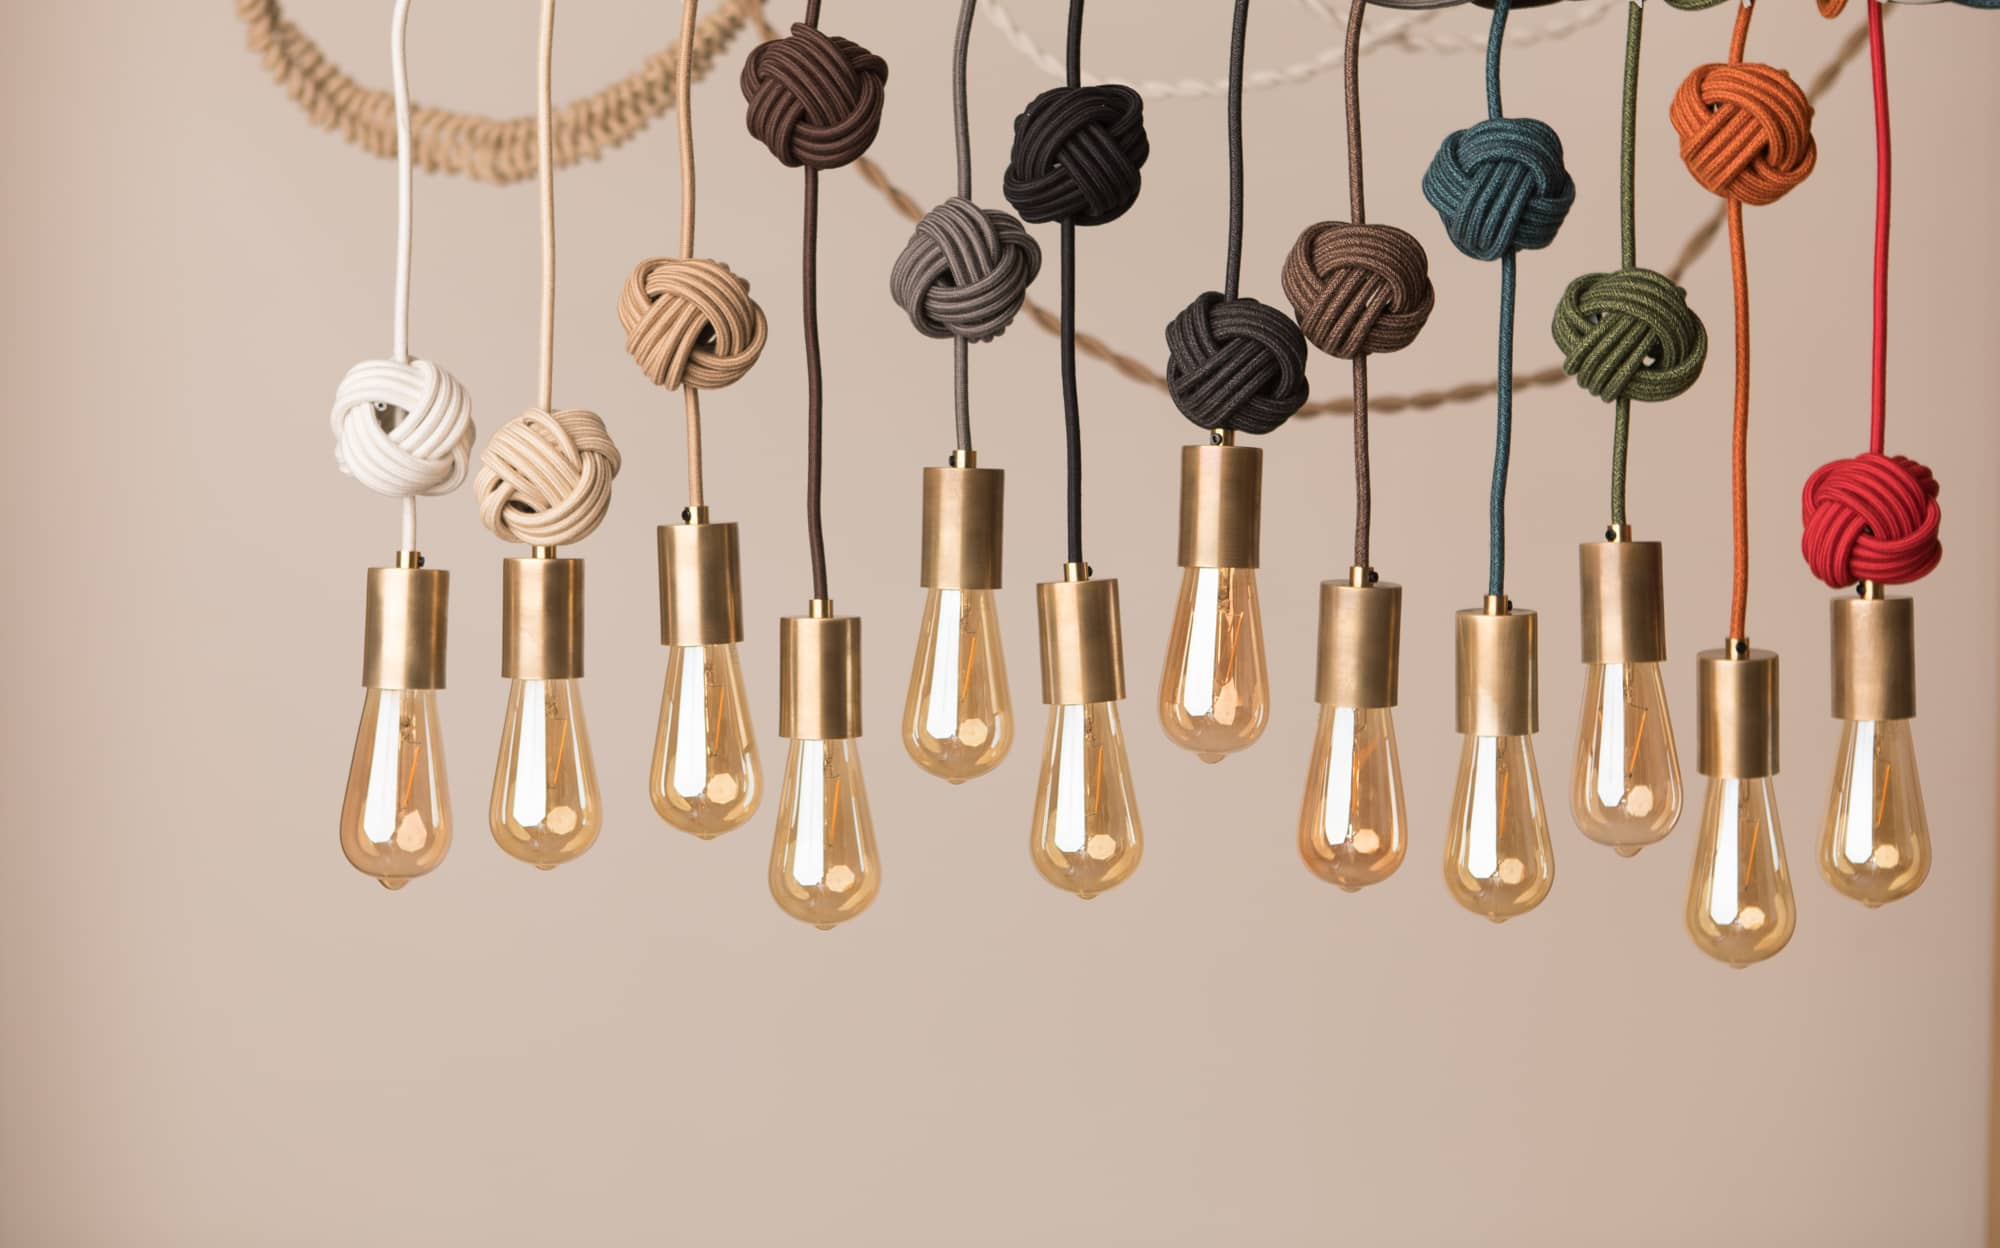 DIY lighting projects monkey knot pendants